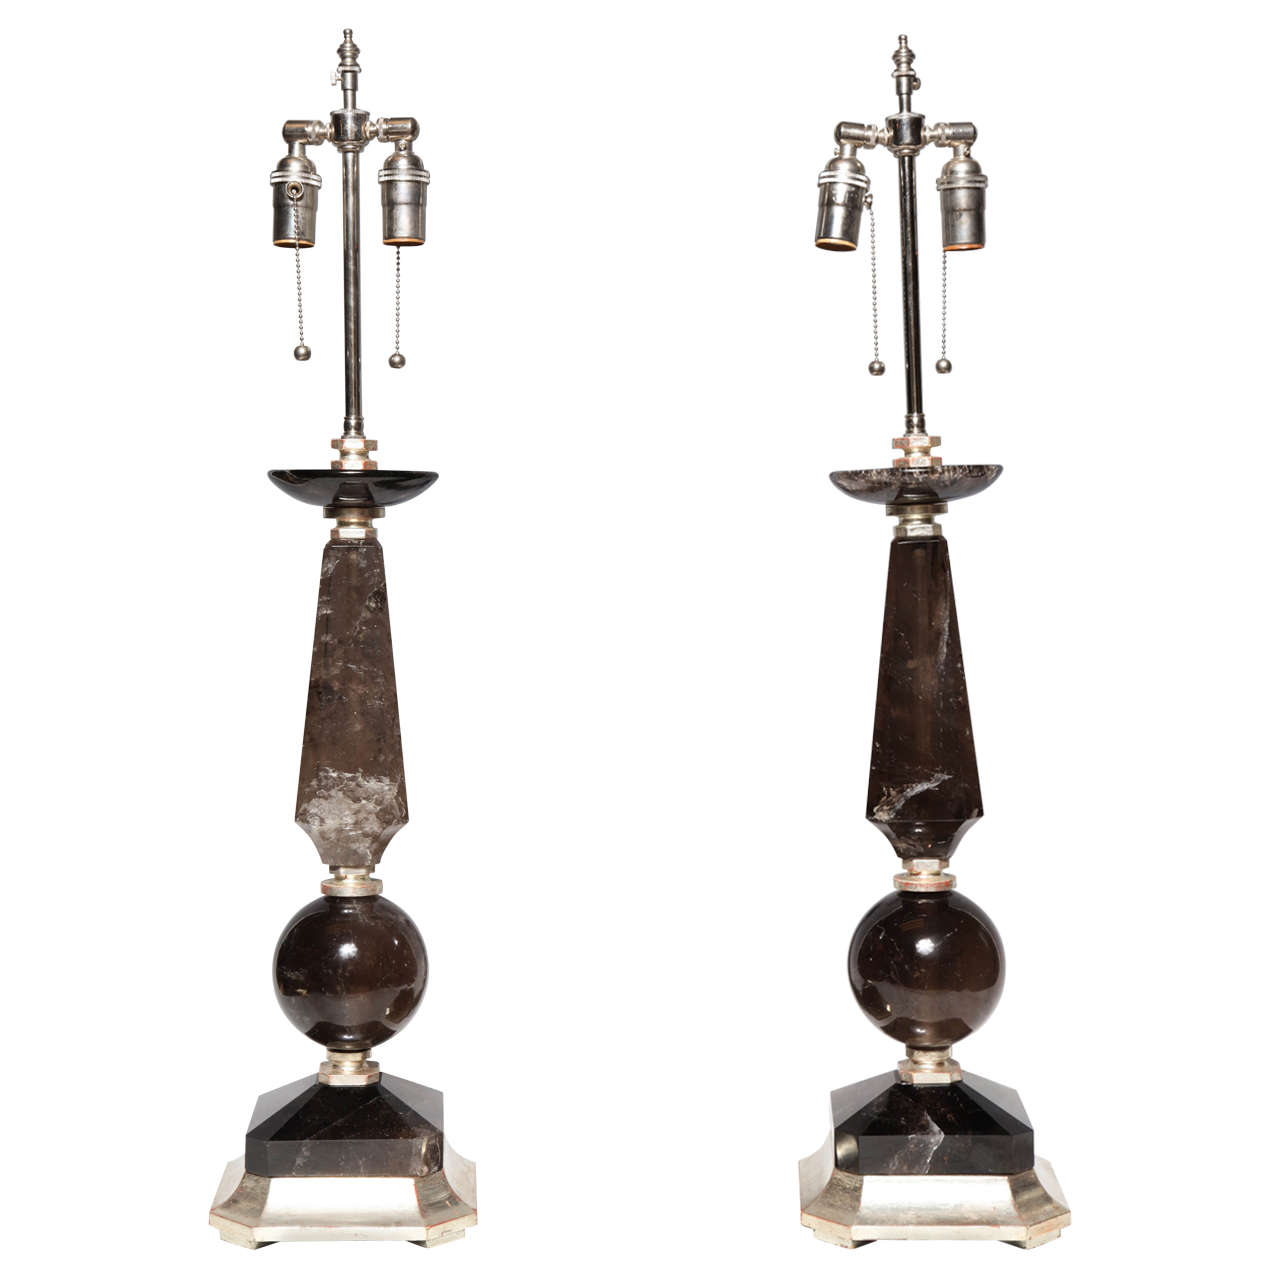 Pair of Smoky Rock Crystal Quartz Lamps with Silvered Wood Bases